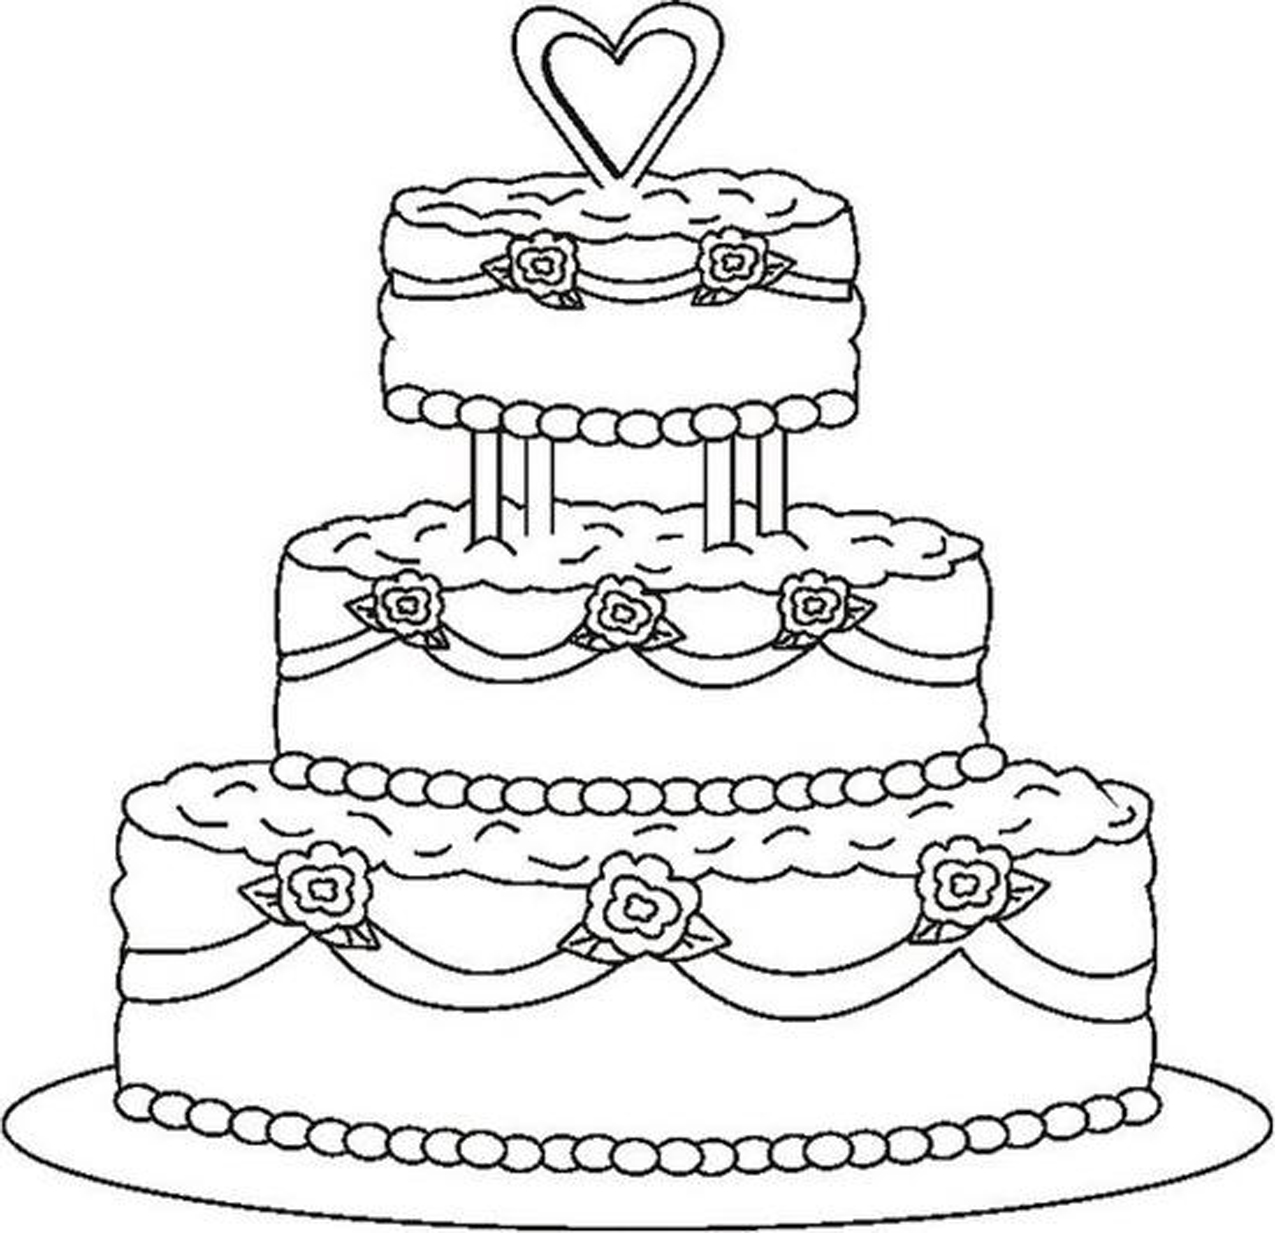 coloring cake for kids coloring pagesprincess coloring pagesdisney princess for cake coloring kids